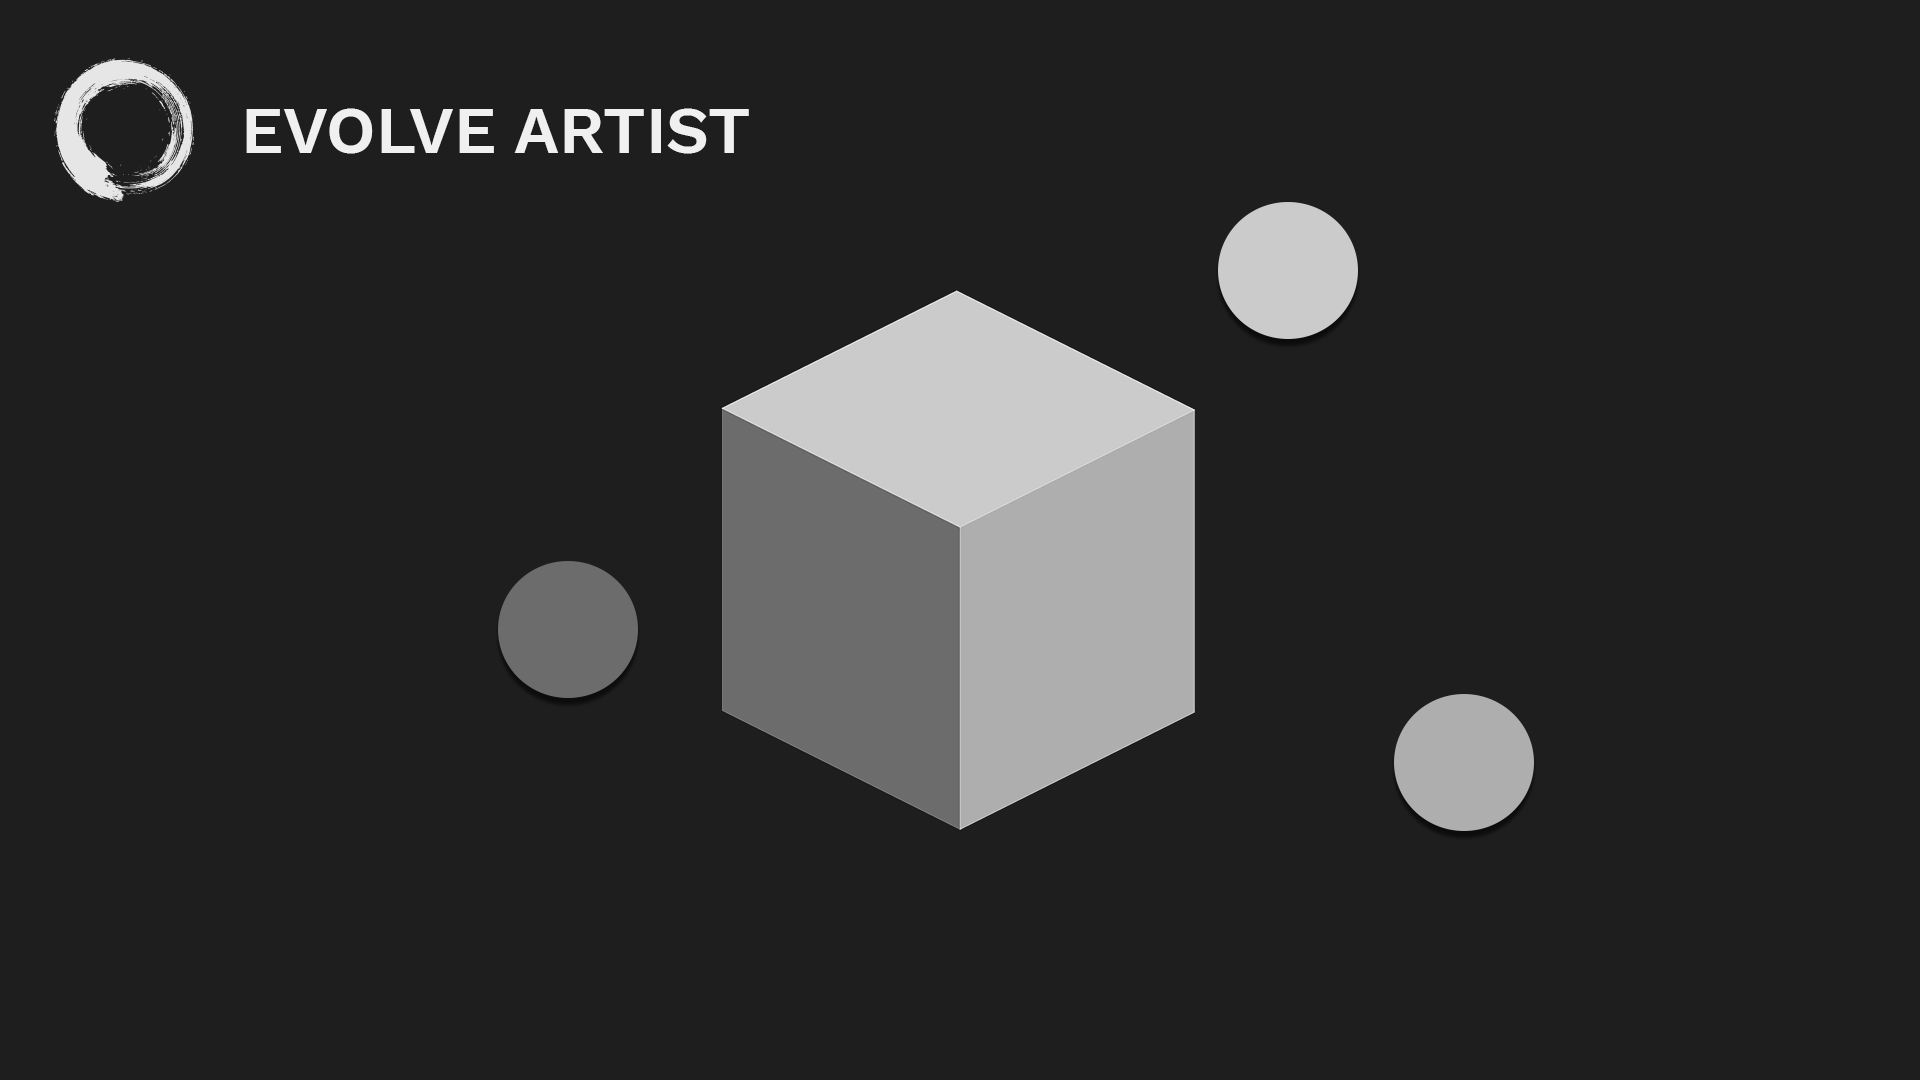 Image of white cube is made up of three values of gray